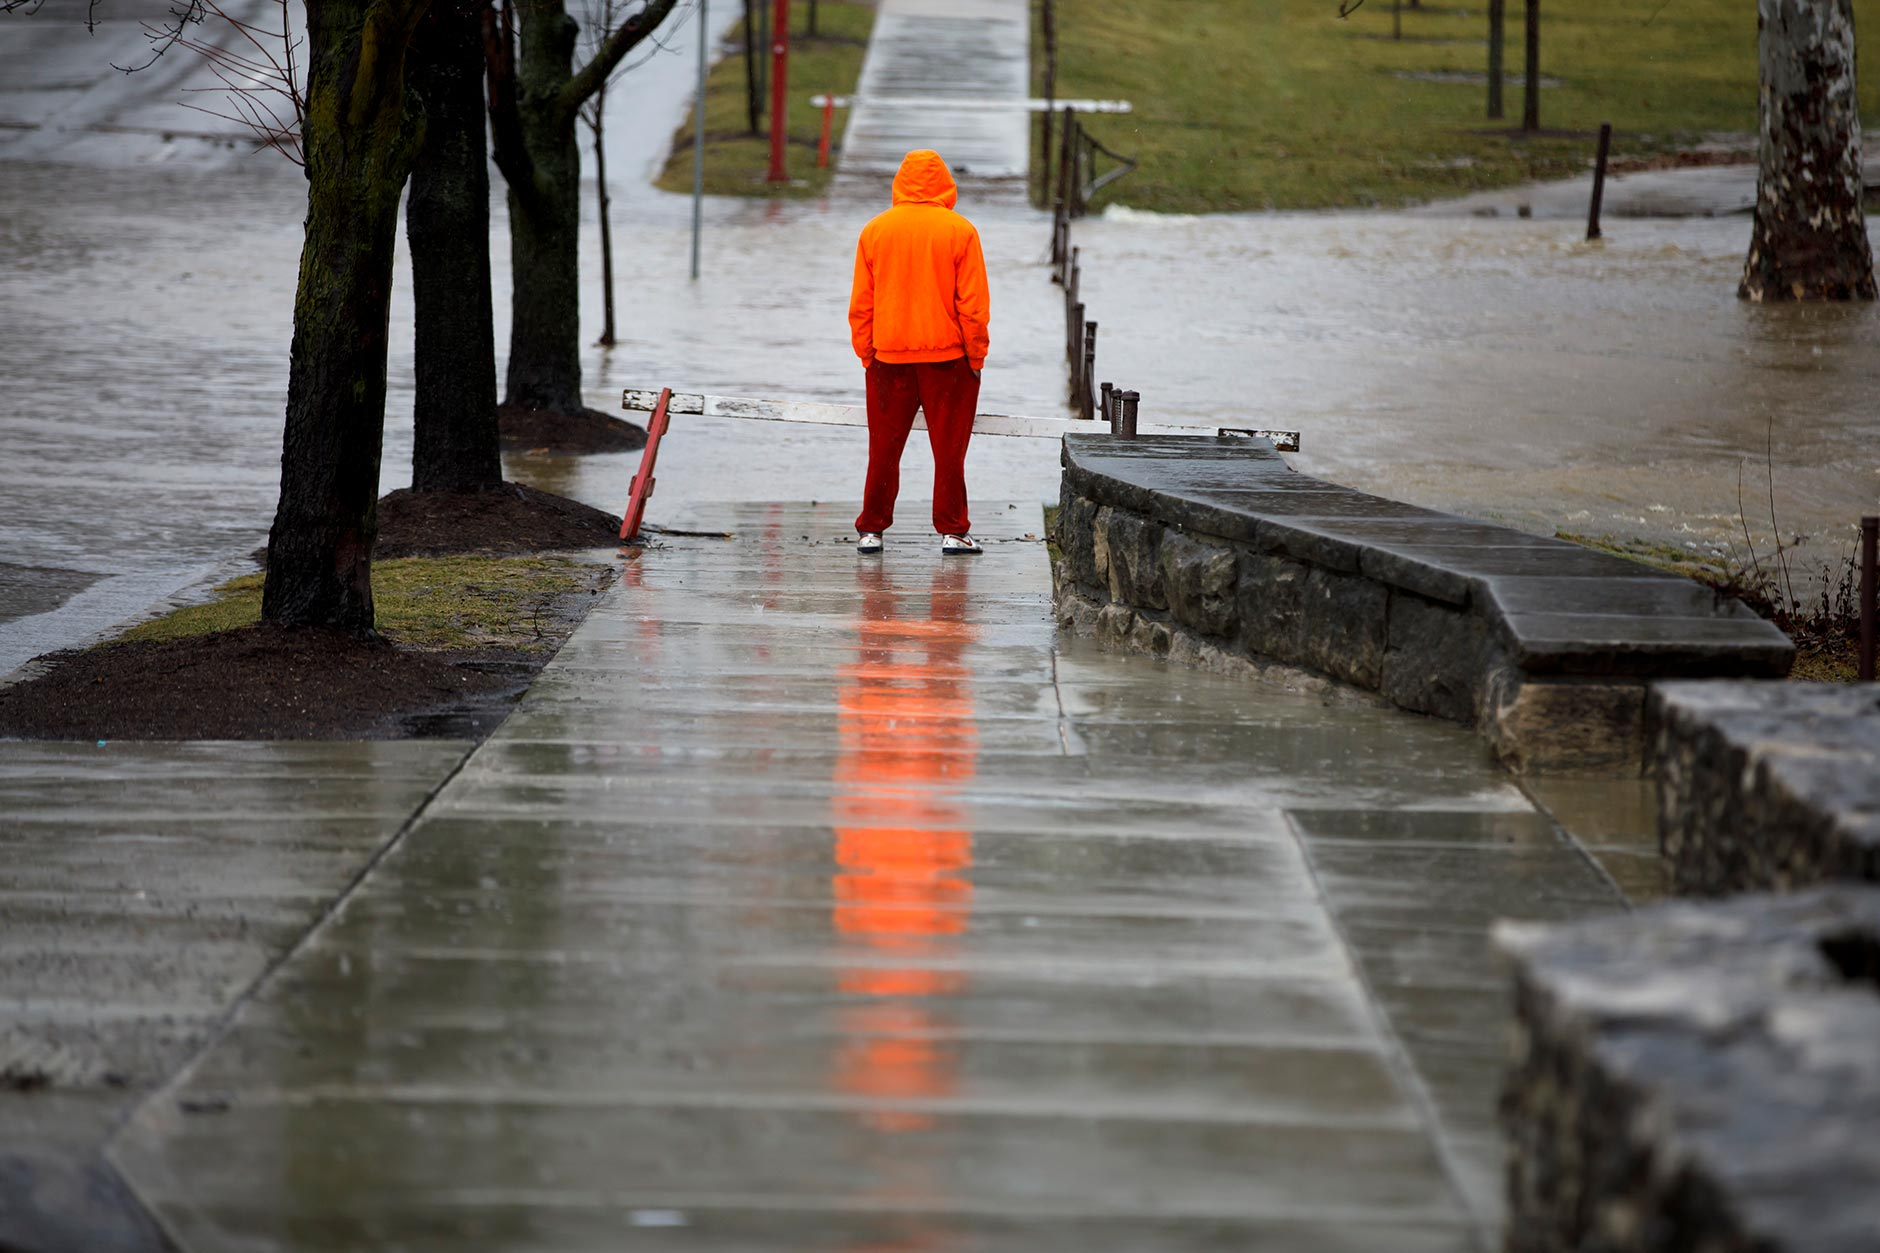 A worker watches as a flooding Jordan River flows across Indiana Avenue near Franklin Hall at IU Bloomington on Thursday, Feb. 7, 2019. (James Brosher/IU Communications)